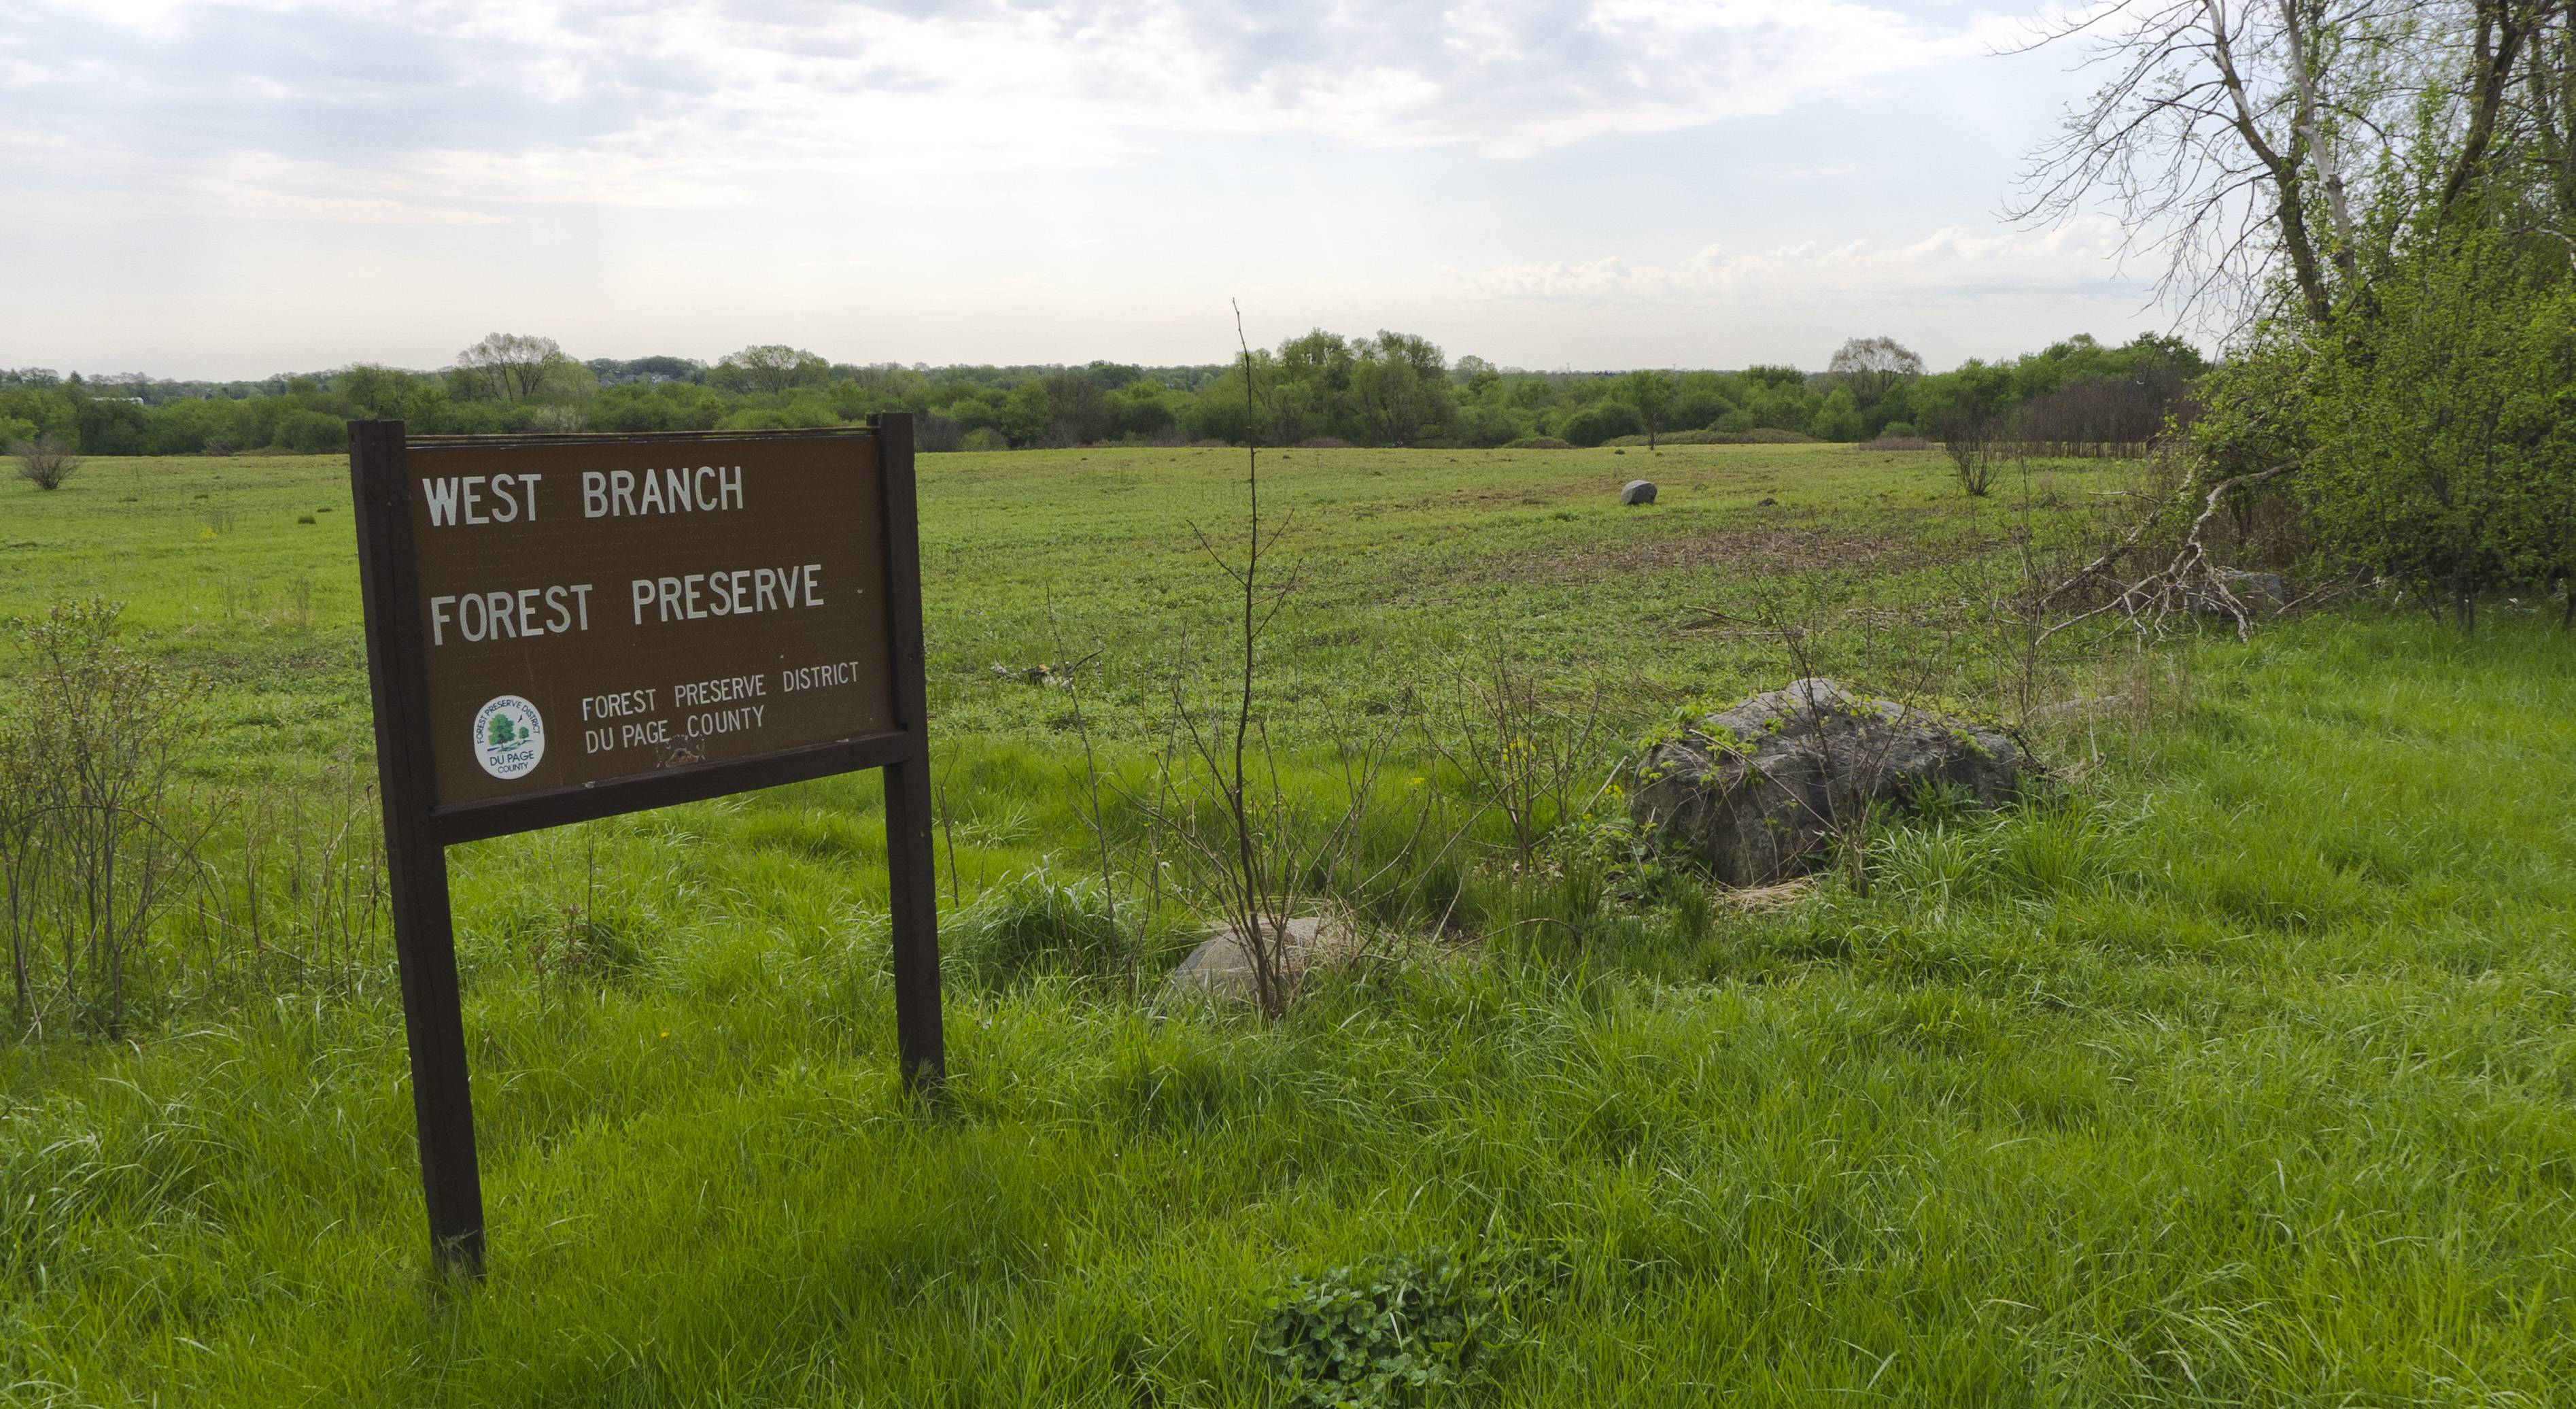 Most people who responded to a recent survey for the DuPage County Forest Preserve District consider preserving and protecting natural areas to be a top priority.